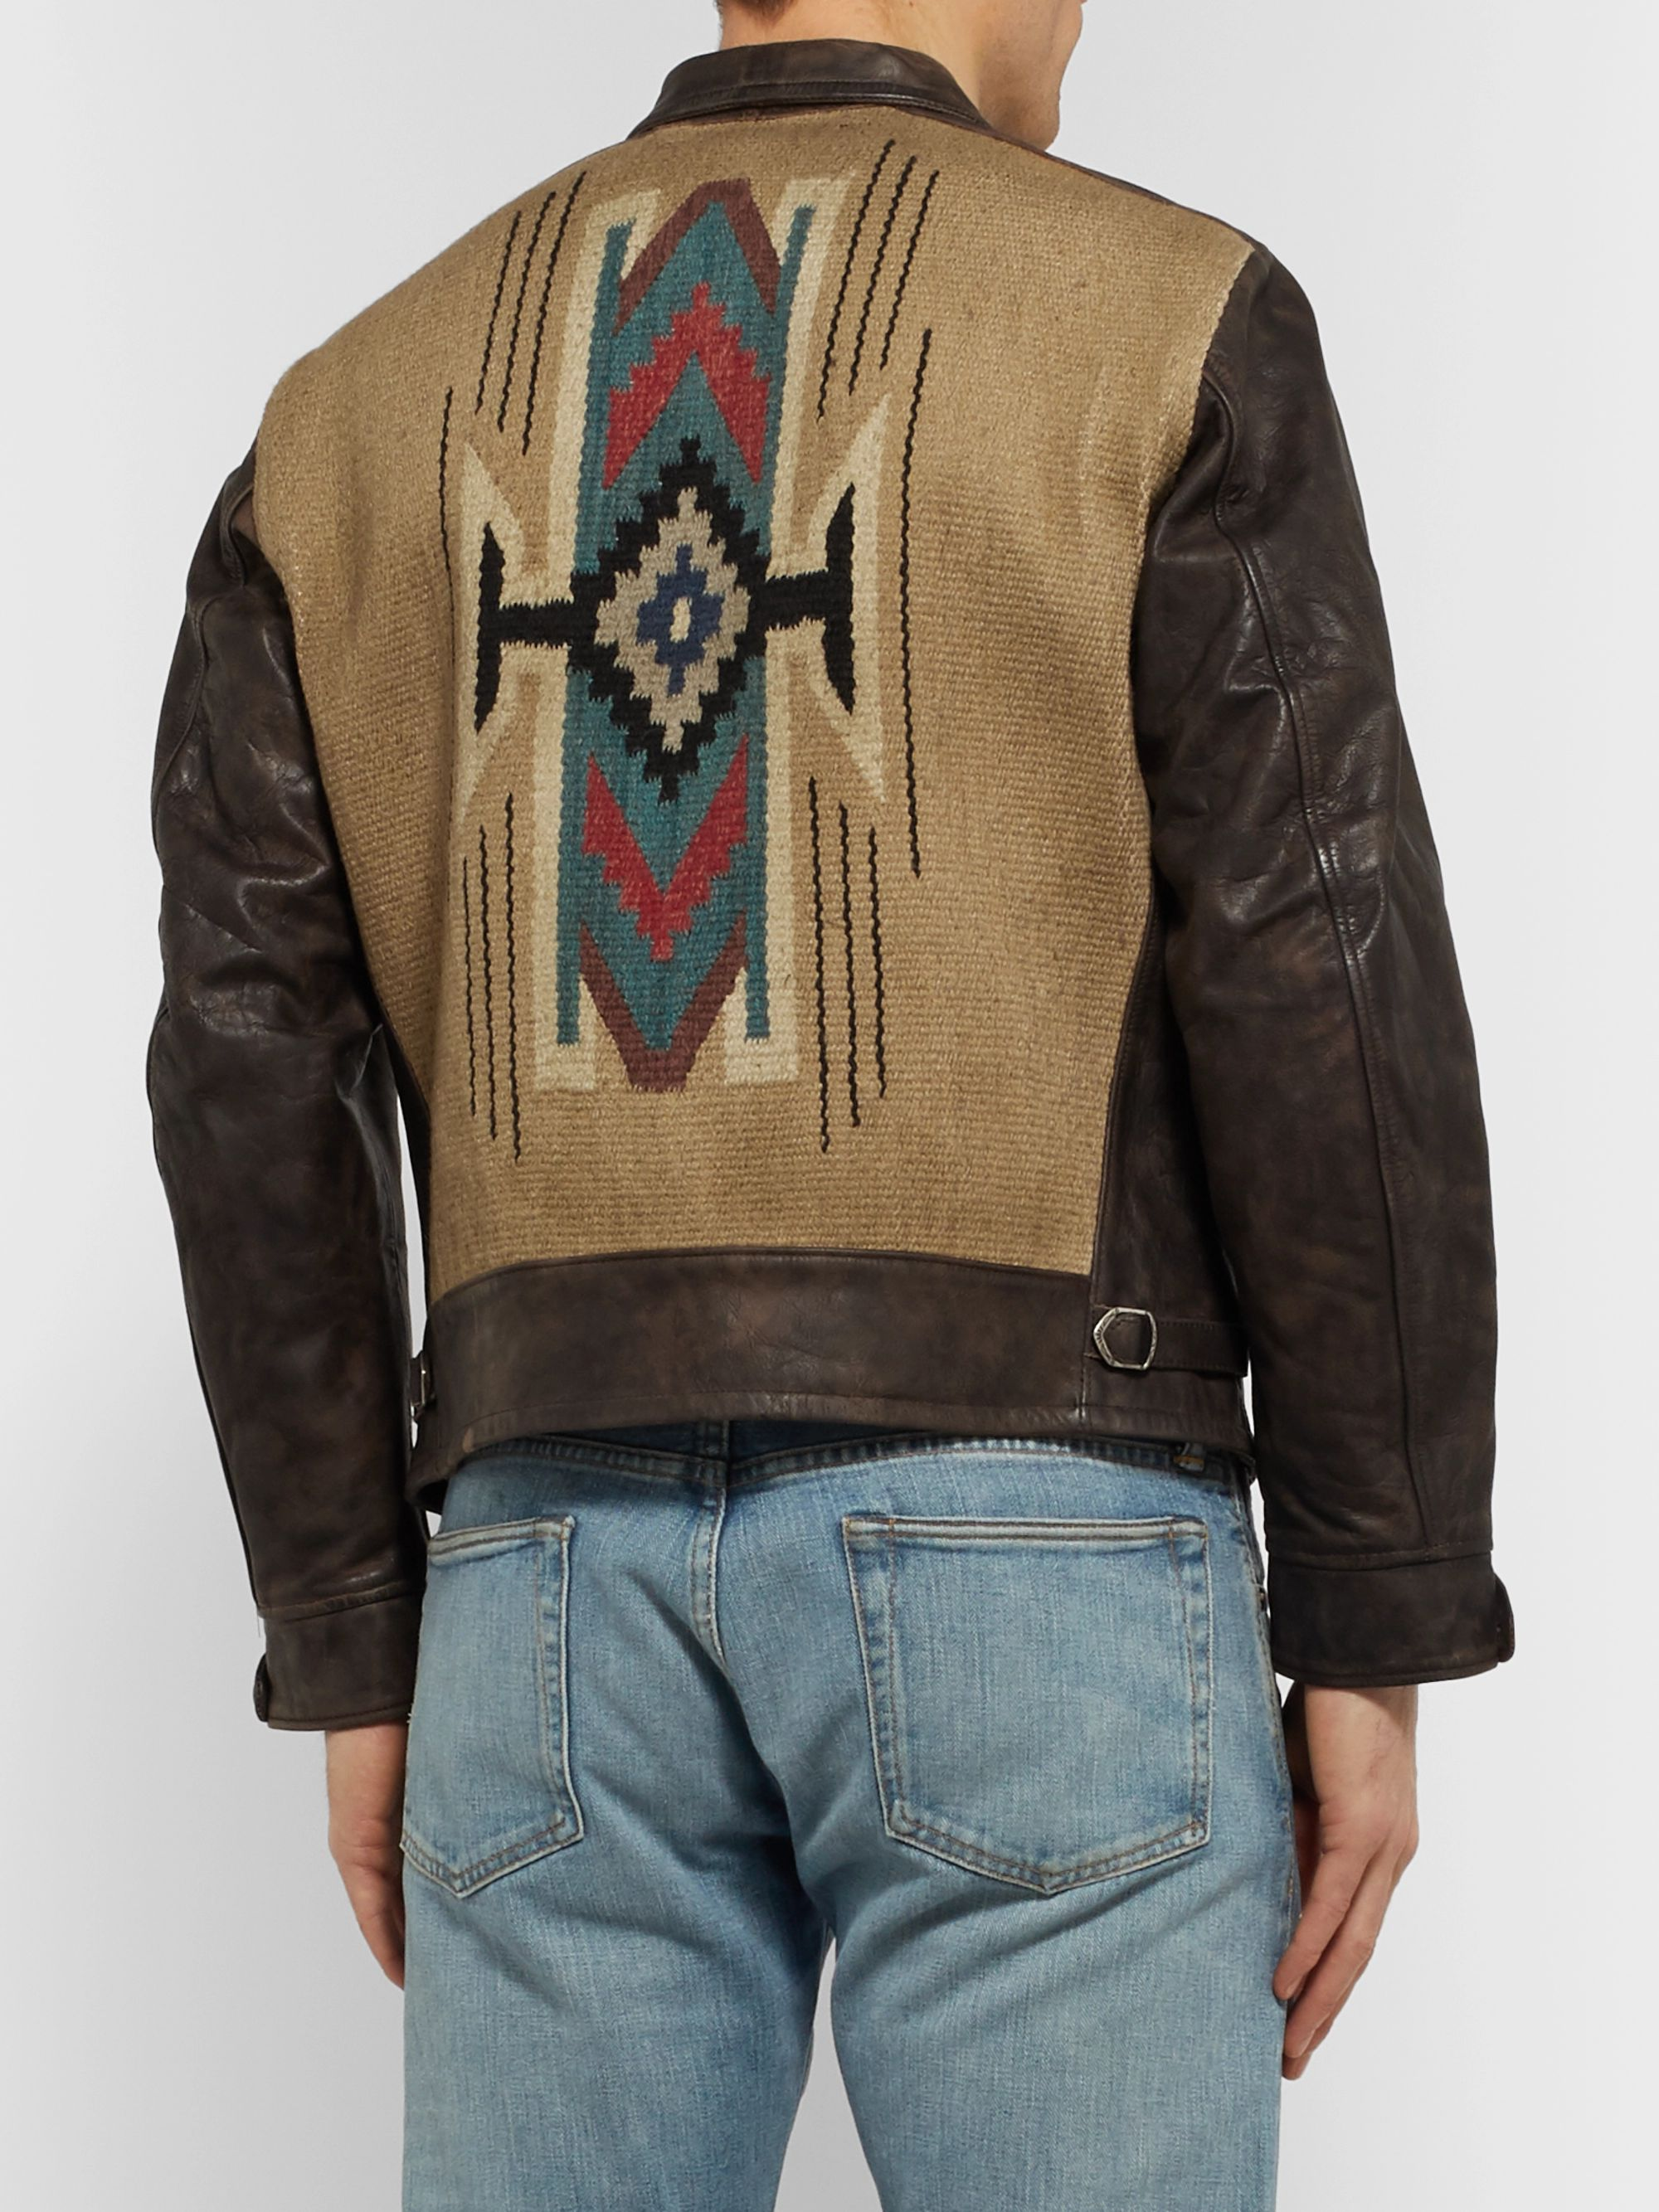 RRL Cotton-Blend Jacquard and Leather Jacket